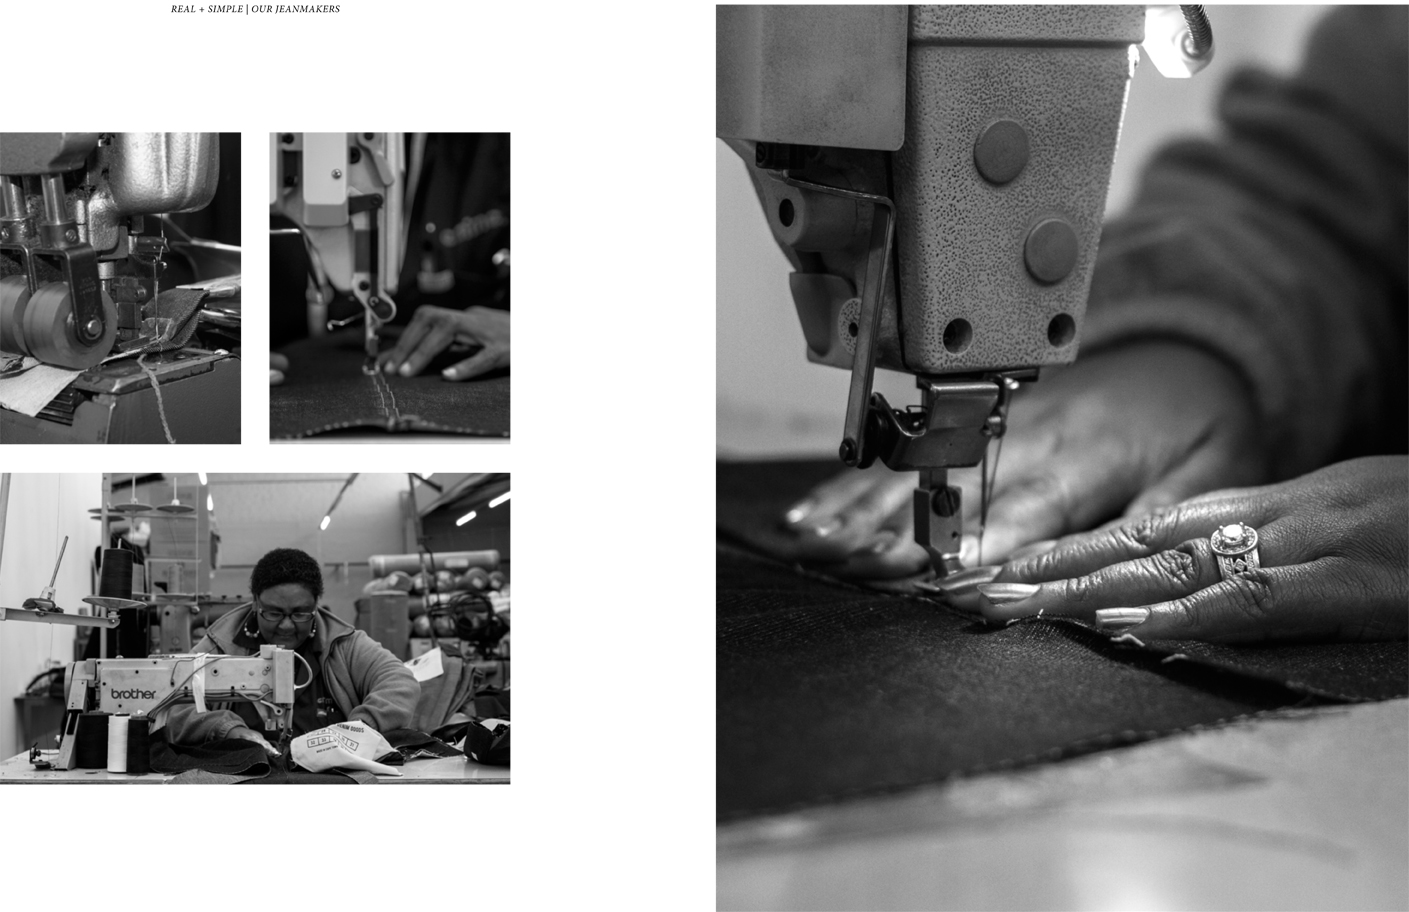 Our Jeanmakers-6.jpg